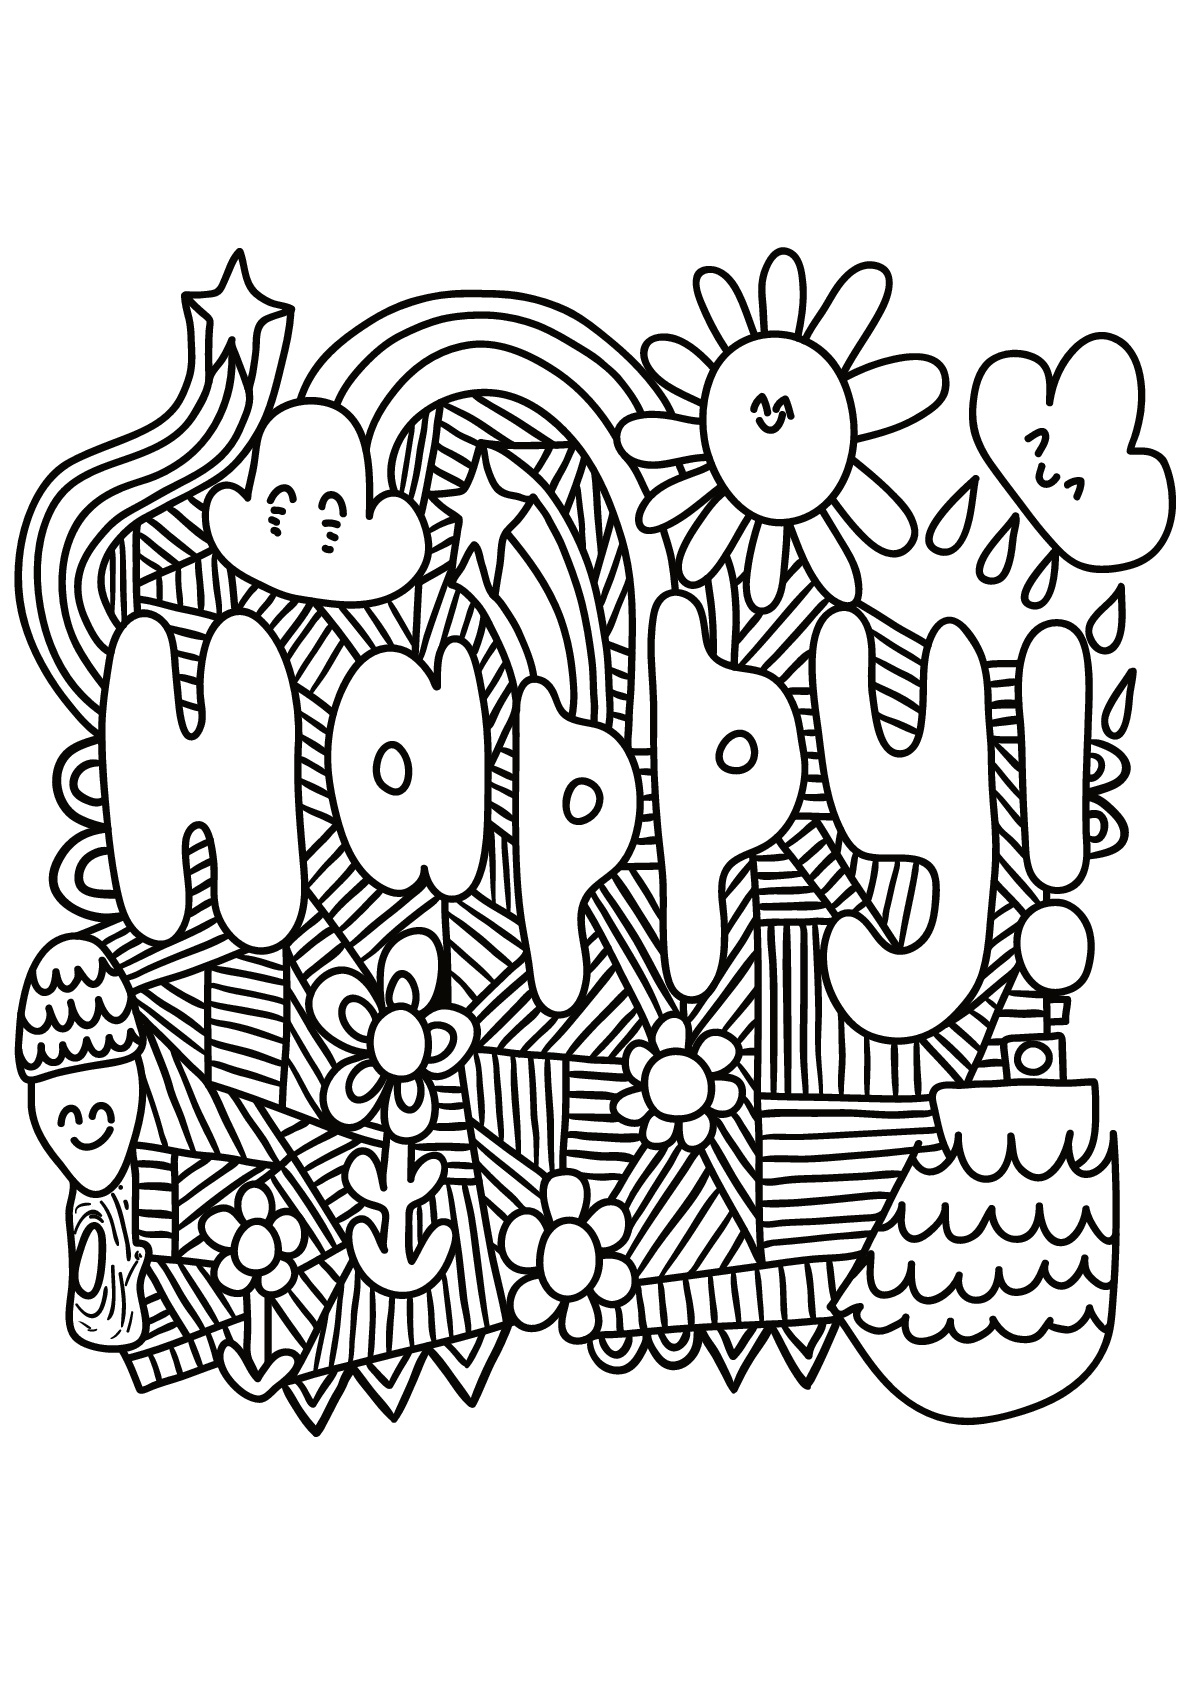 Quote Coloring Pages for Adults and ...bestcoloringpagesforkids.com